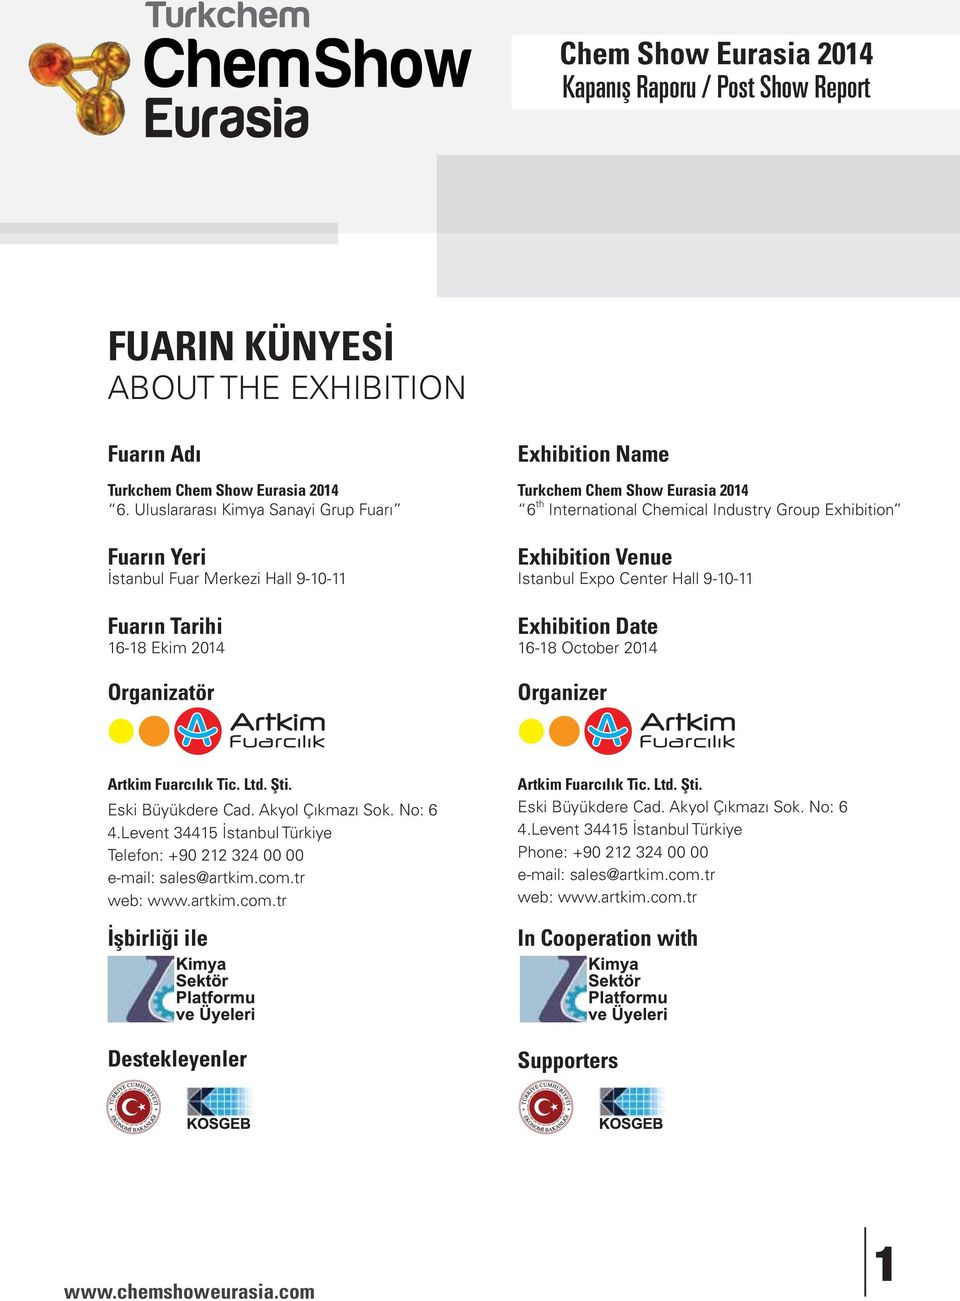 Chemical Industry Group Exhibition Exhibition Venue Istanbul Expo Center Hall 9-10-11 Exhibition Date 16-18 October 2014 Organizer Artkim Fuarcılık Tic. Ltd. Şti. Eski Büyükdere Cad.